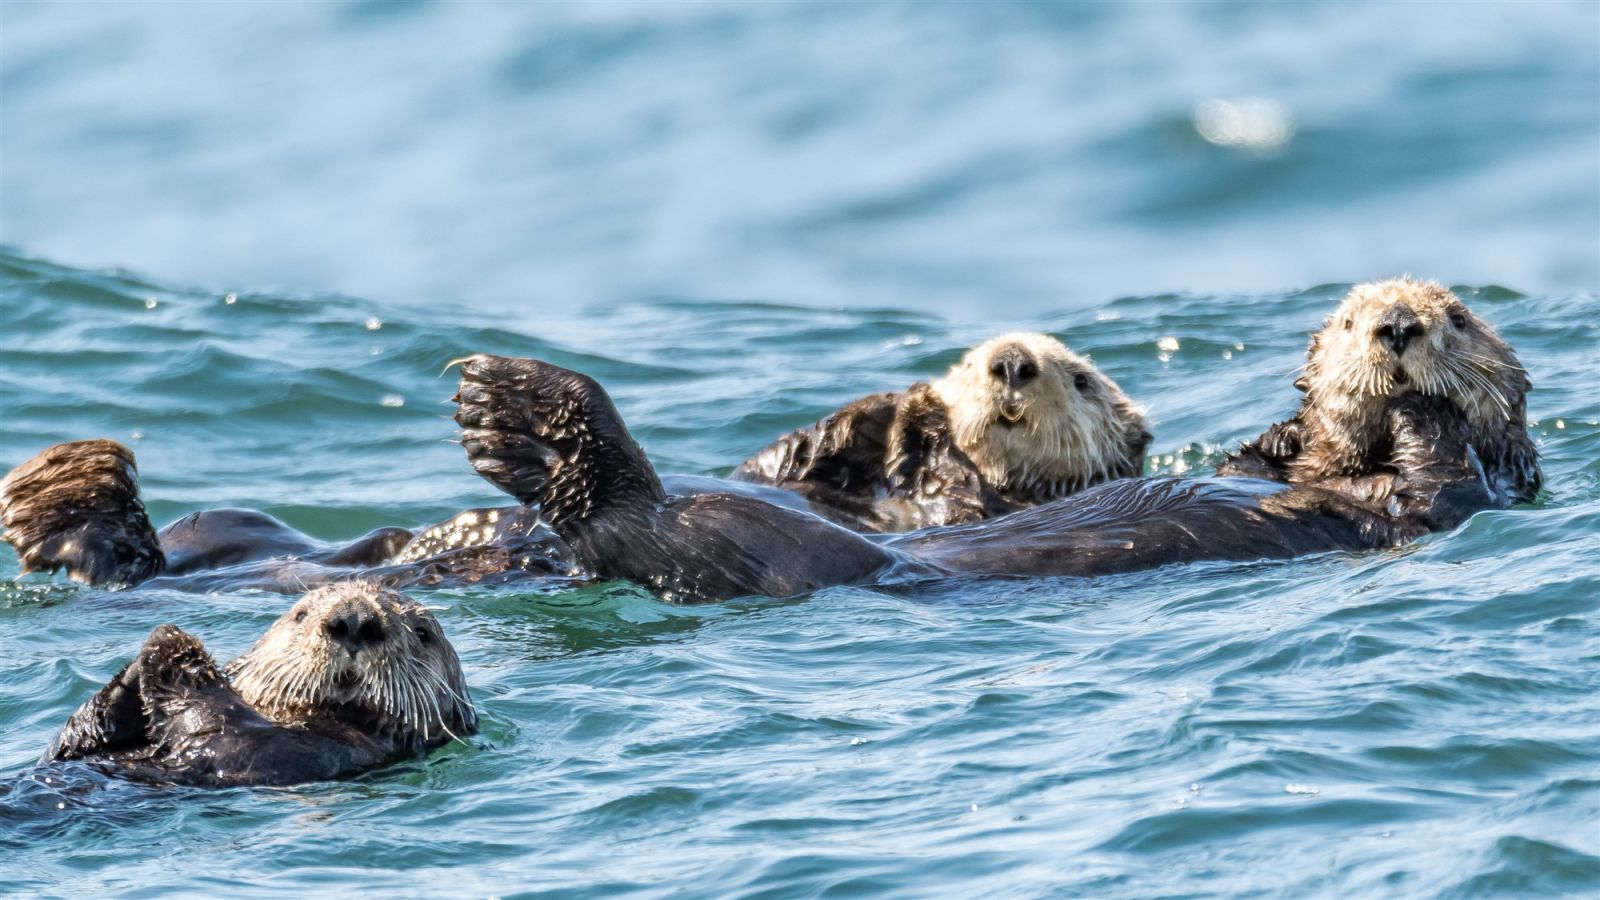 sea otters riding the ocean swell